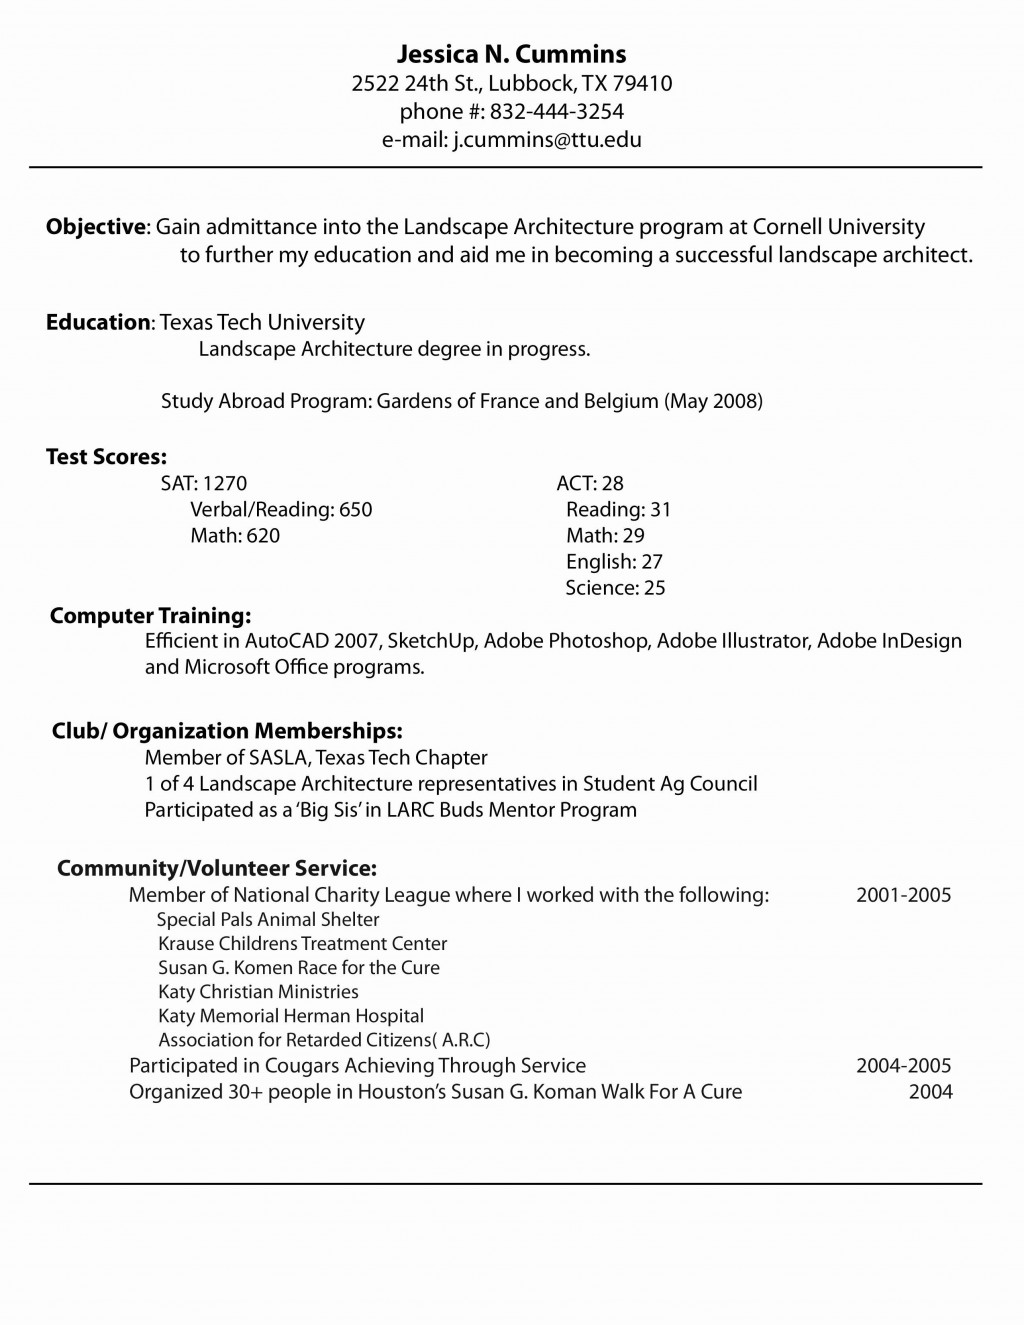 015 Quick Resume Builder Free New Autism Cover Letters Benjamin Franklin Chess Essay Cornell Of Stupendous Mba Examples Engineering Essays That Worked Large